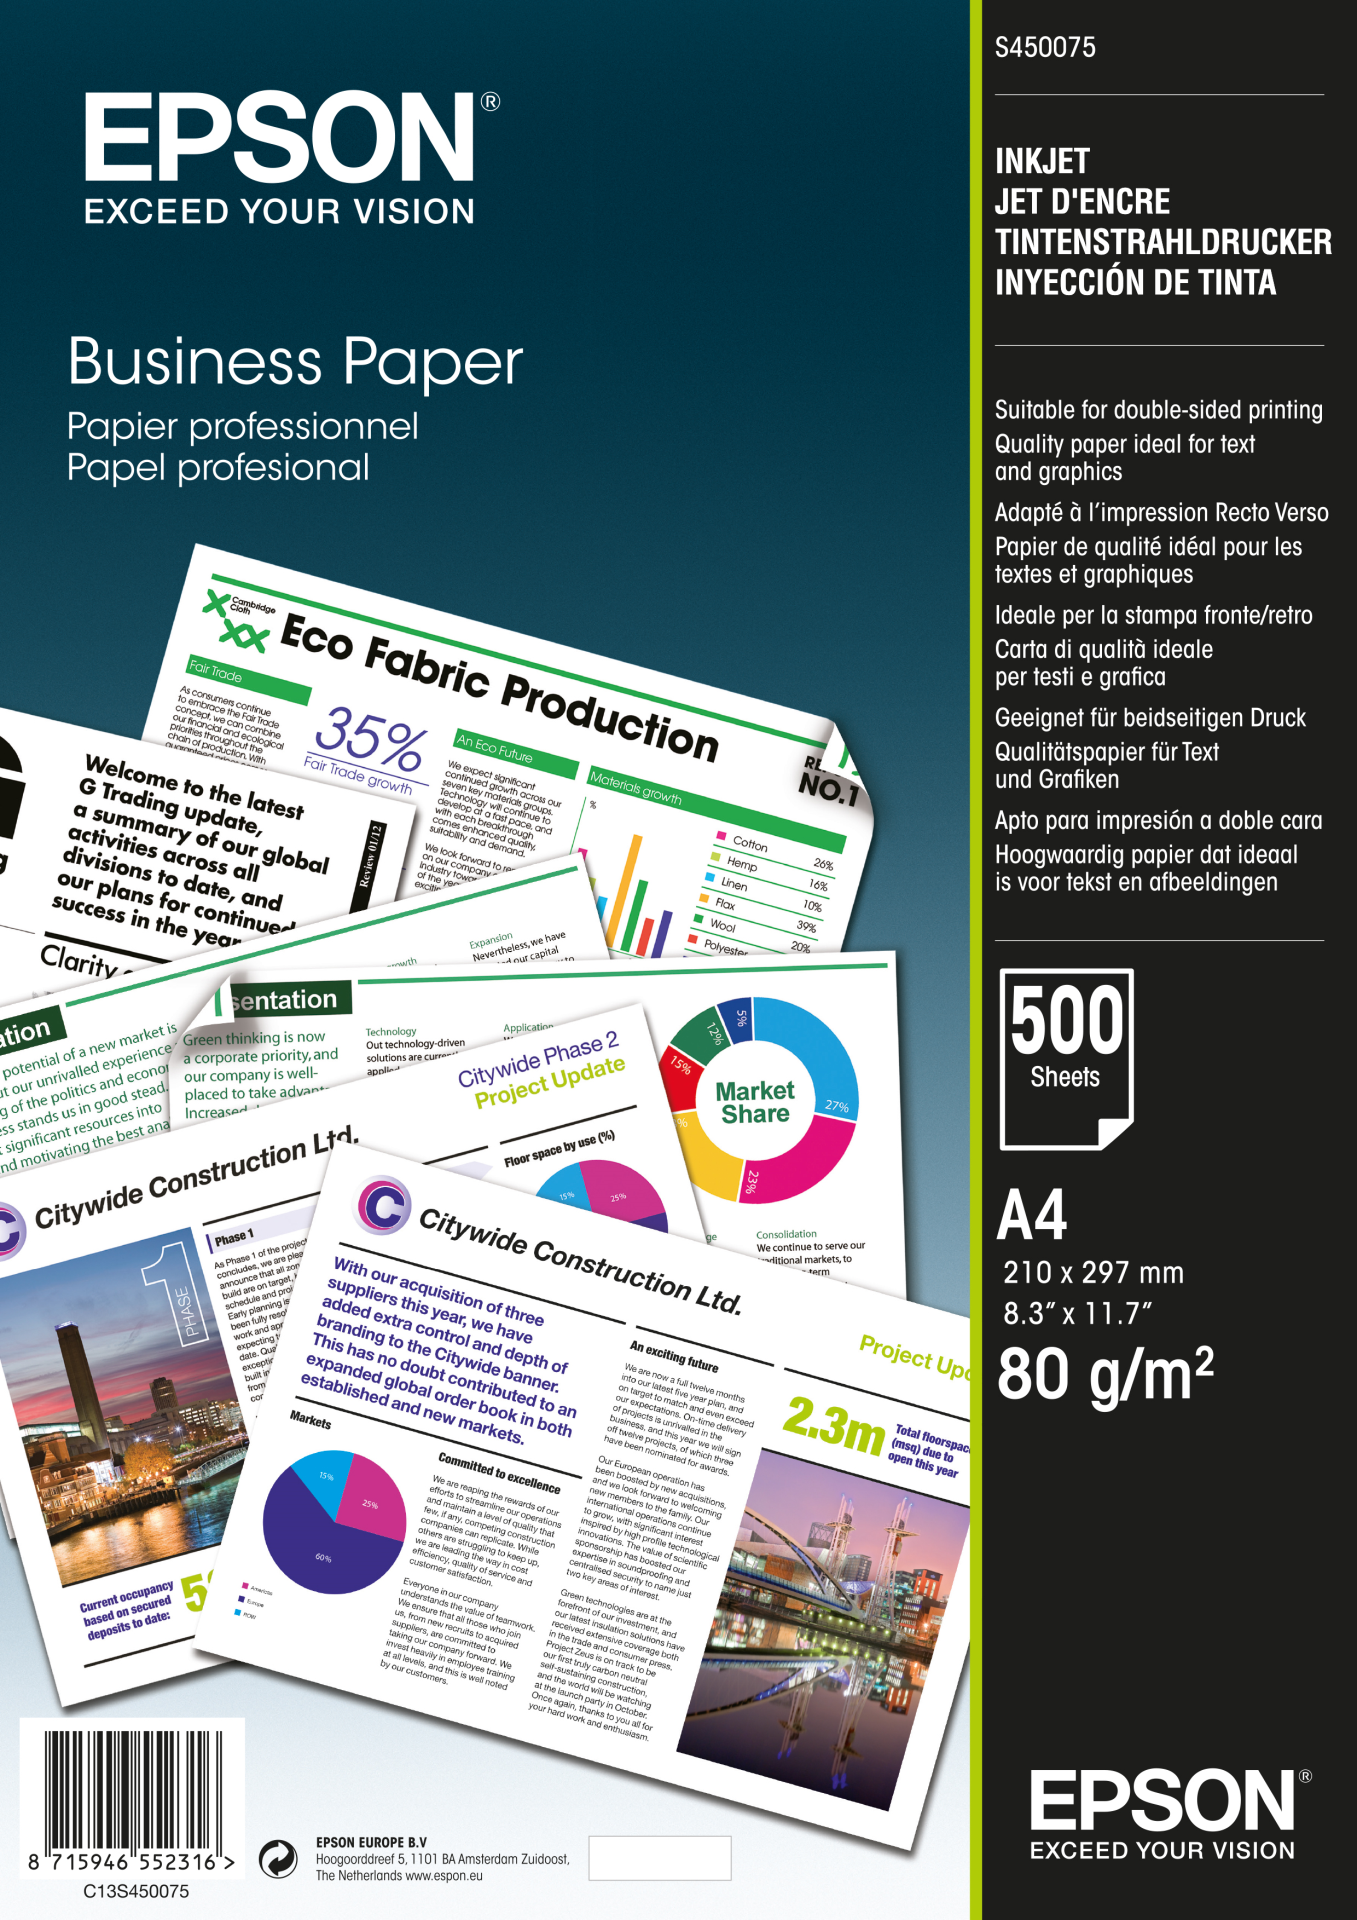 Epson Business Paper A 4 500 Sheet, 80 g S 450075 papīrs